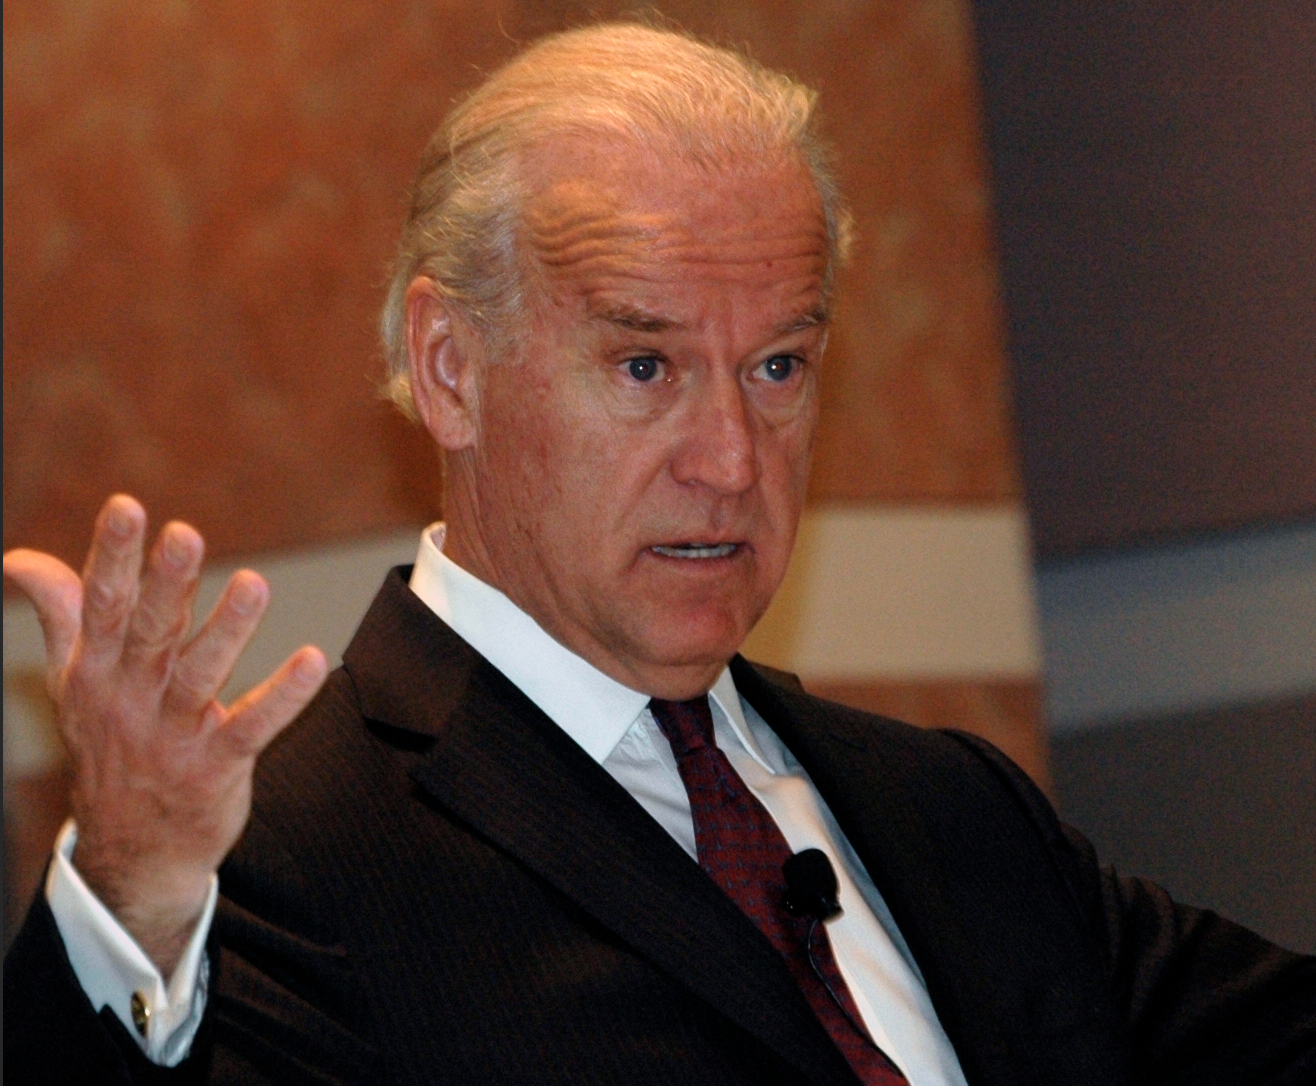 Biden Asks Am I crazy or should i be winning by a lot